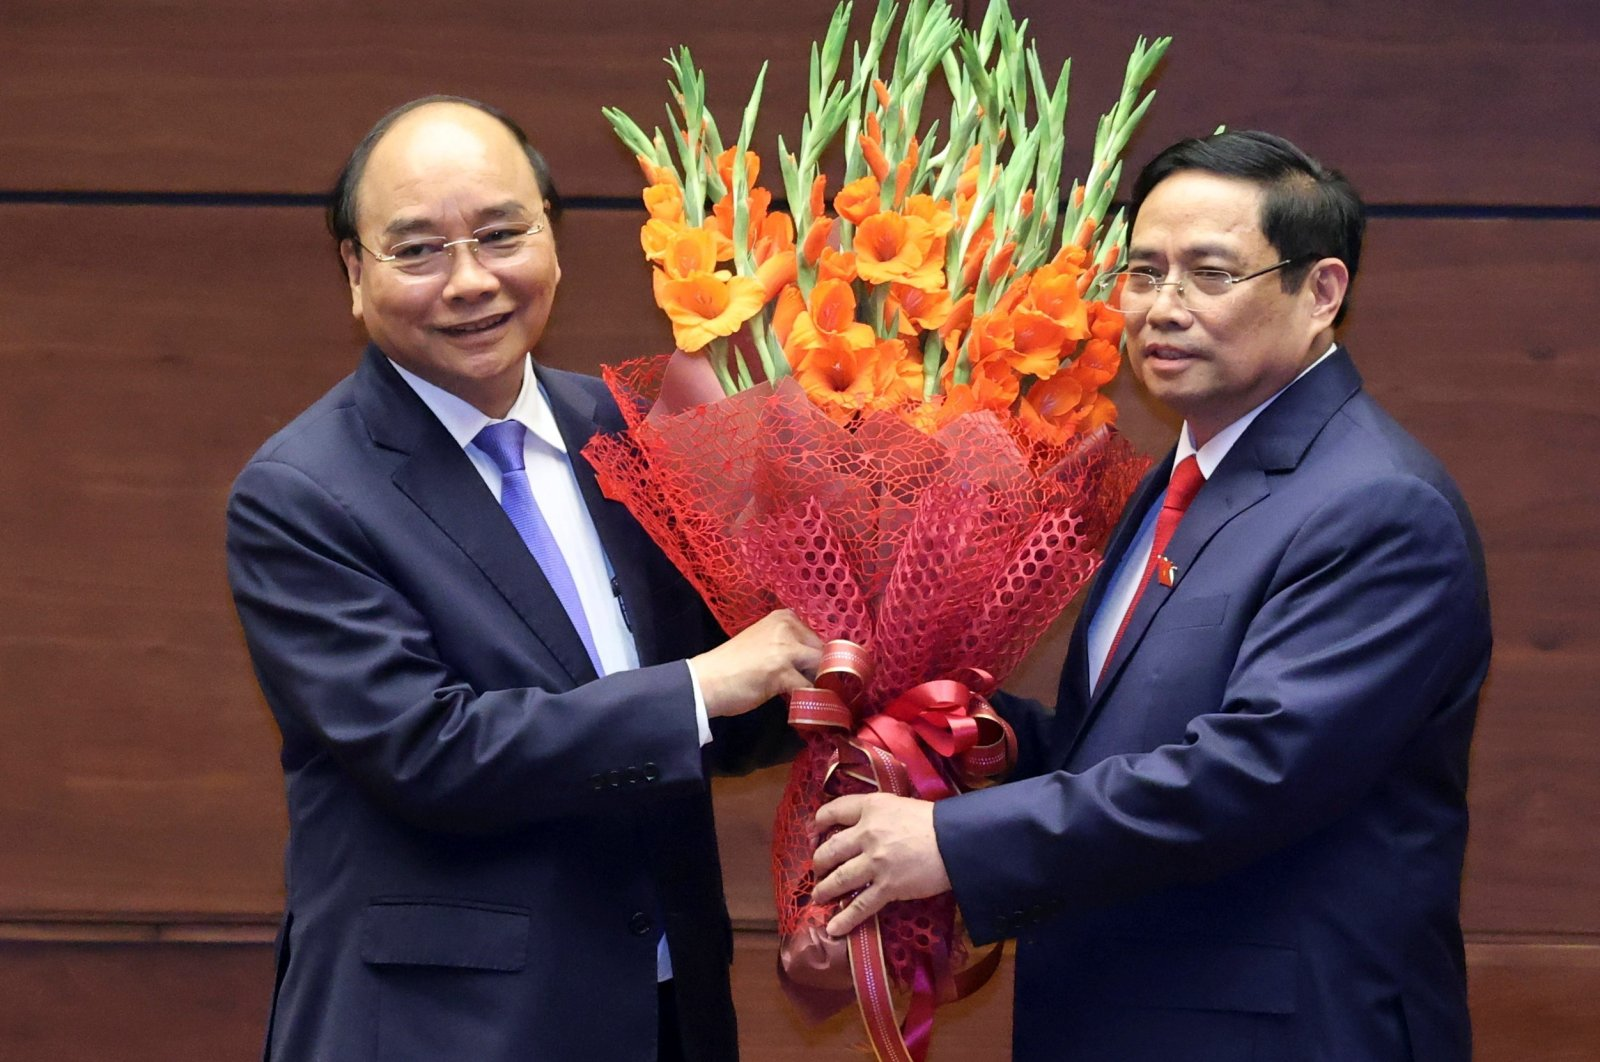 Vietnam's new prime minister, Pham Minh Chinh (R), holds a bouquet of flowers with the country's former prime minister,  Phuc, who became the new president, at an official ceremony in Hanoi, Vietnam, April 5, 2021. (VNA via Reuters)